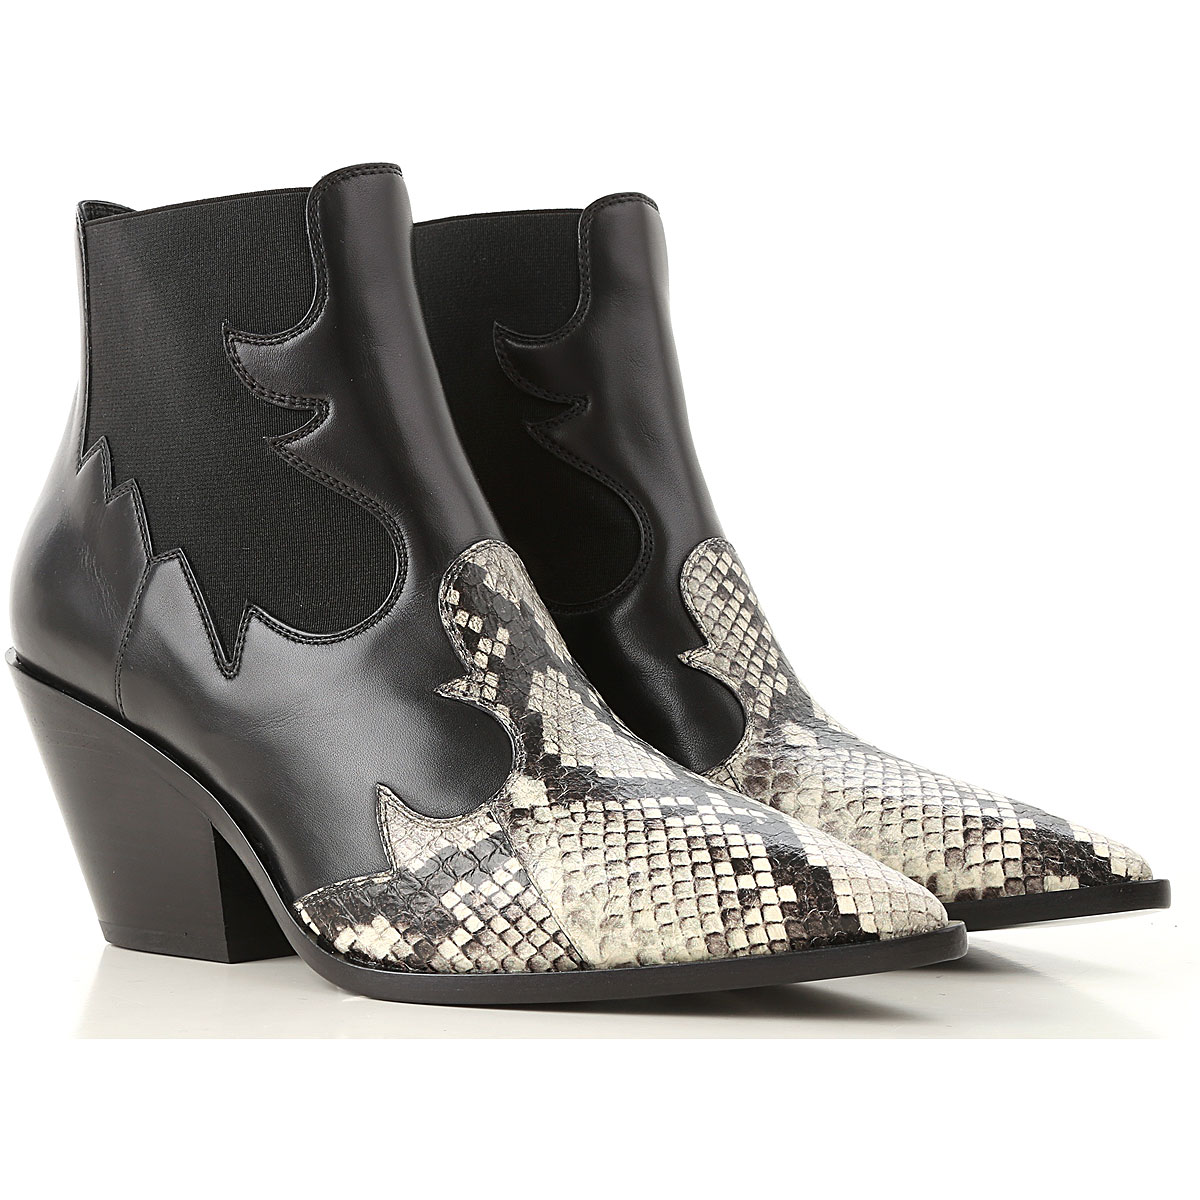 Image of Casadei Boots for Women, Booties, Black, Leather, 2017, 7 8 9.5